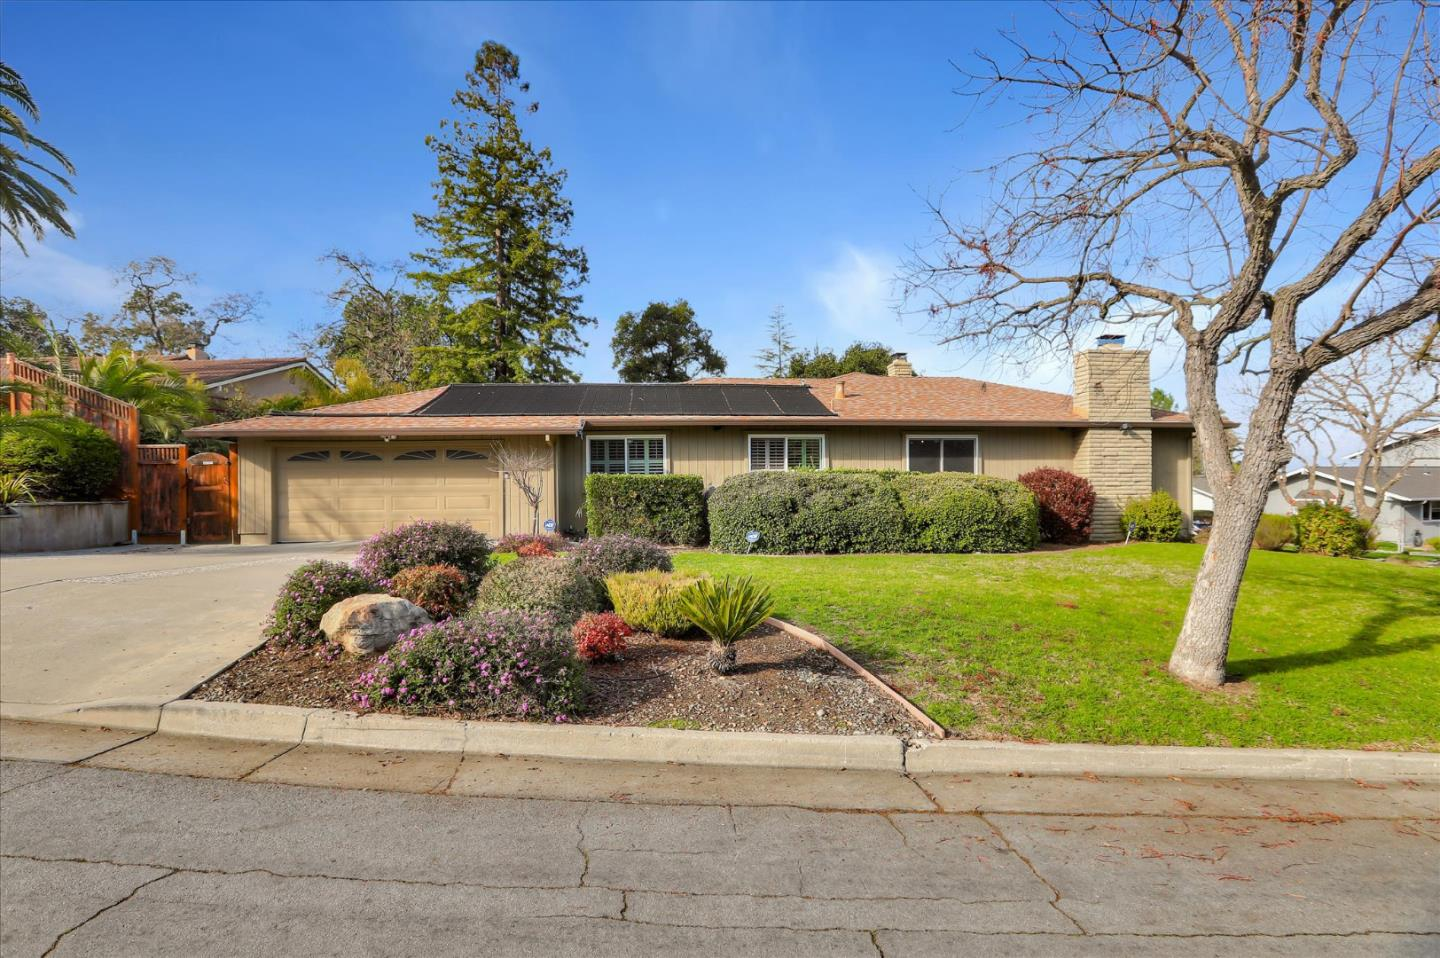 In the heart of the Almaden Country Club neighborhood lies your own private oasis! With 5 spacious bedrooms & 2.5 bathrooms, this tastefully updated home has 2,885 s.f. on a huge 12,700 s.f landscaped lot. Double doors open to a formal entry w/slate flooring. The functional floor plan Includes formal living, family, and dining rooms, a large eat-in kitchen, and separate laundry room. Three large sets of dual pane sliders lead to the peaceful & private back yard, complete with outdoor kitchen and sparkling Pebble Tec pool & spa (Both heated and salt water). Stained and stamped concrete, Connecticut Bluestone and natural rock waterfall blend seamlessly w/nature. Other notable features....Arched doorways, central alarm, granite counters, hardwood flooring, recessed lights, exposed beam ceilings, newer roof, and stainless appliances. Easy access to Silicon Valley companies and top schools...Williams Elementary, Bret Harte Middle, and Leland High. Come and see what you've been missing.